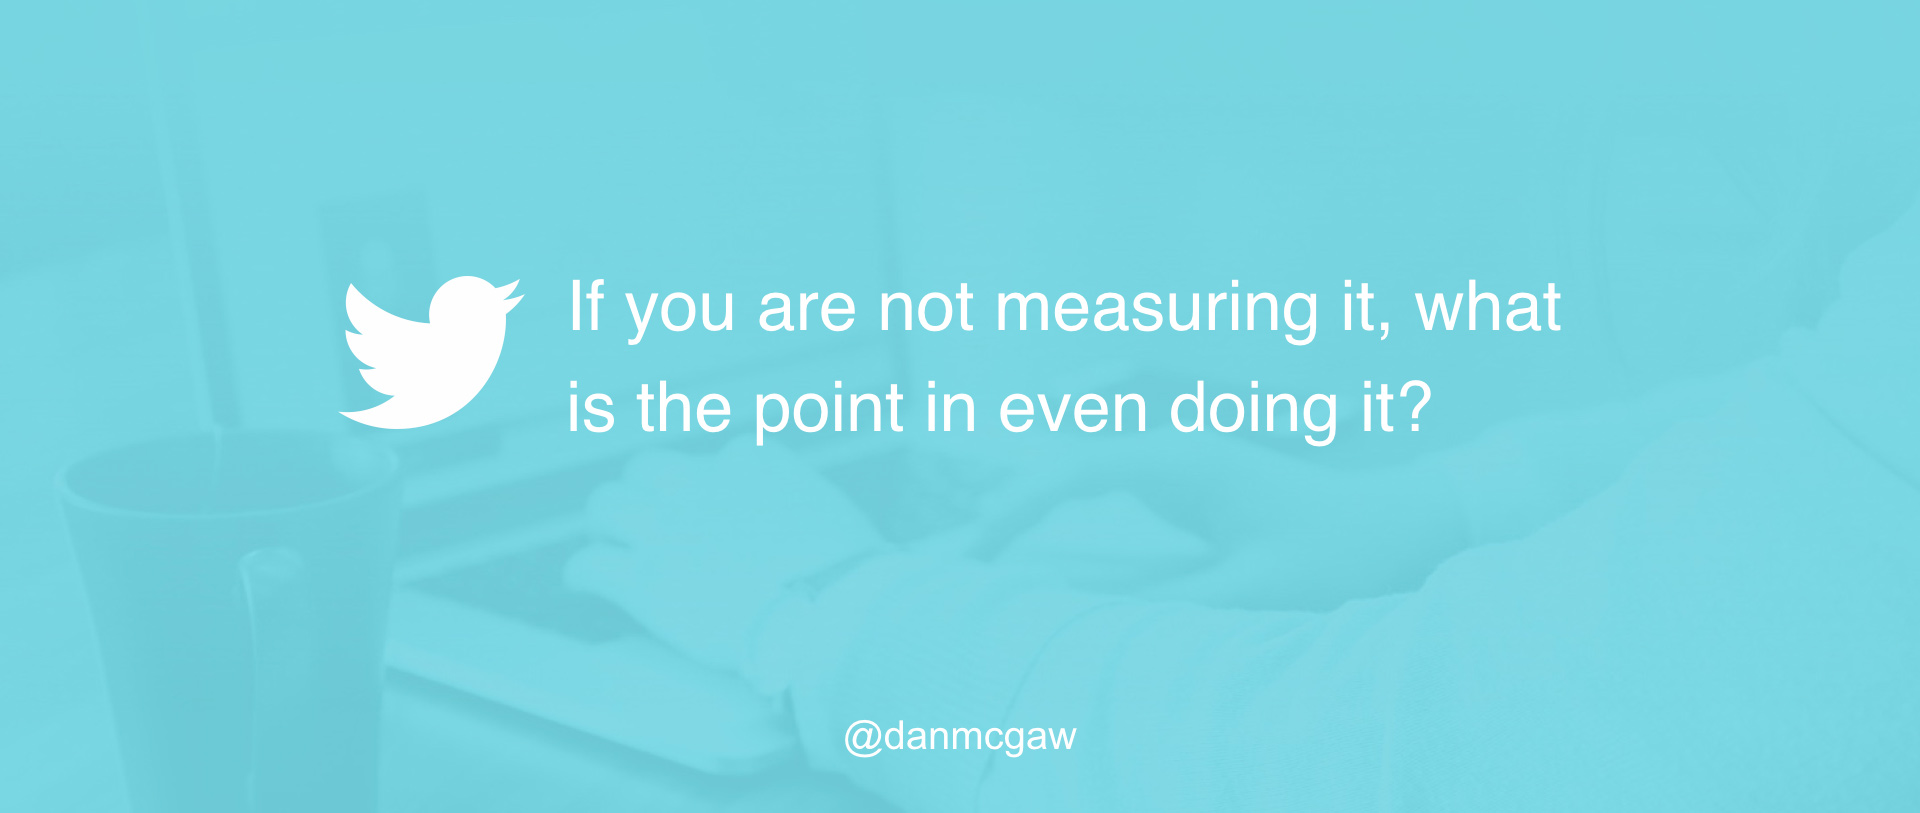 if you are not measuring what is the point